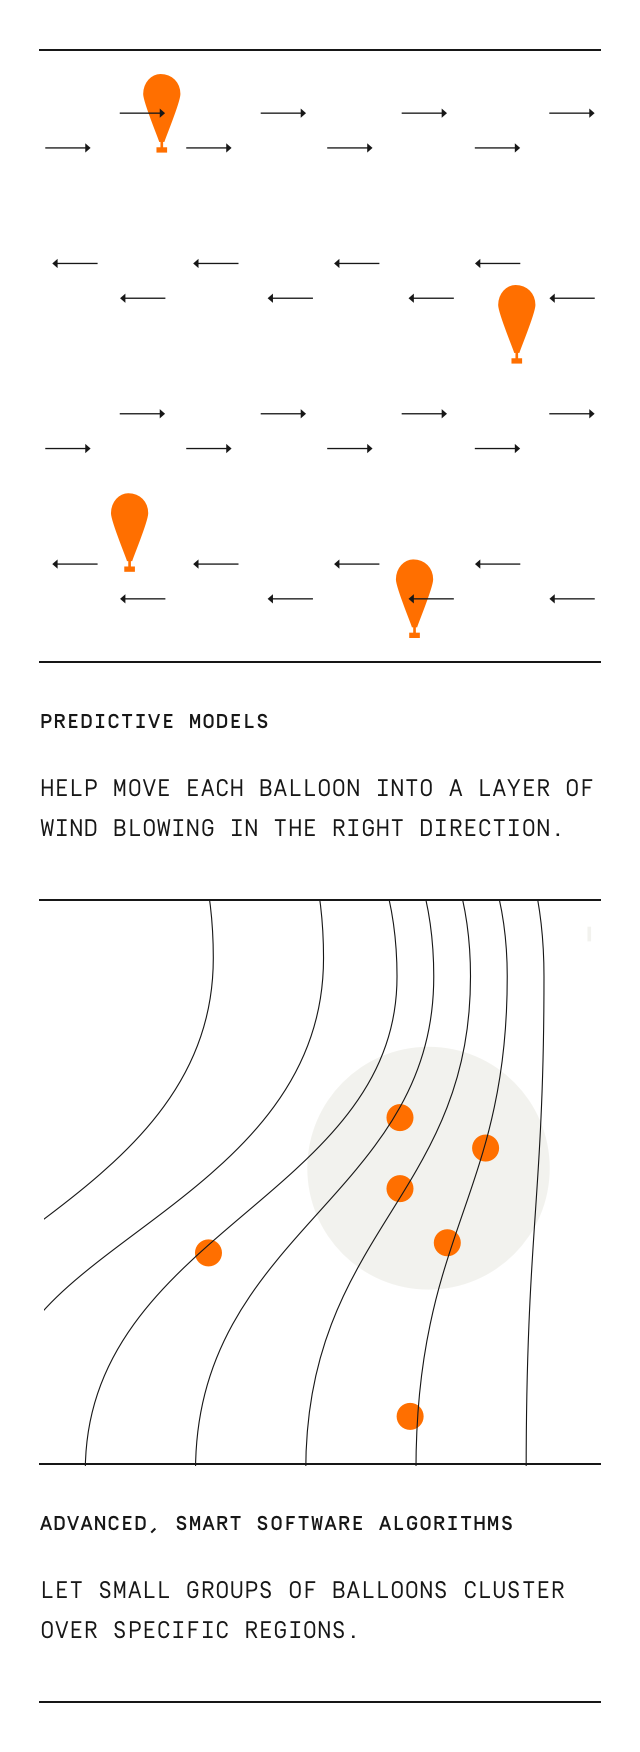 Predictive models help move each balloon into a layer of wind blowing in the right direction. Advanced, smart software algorithms let small groups of balloons cluster over specific regions.